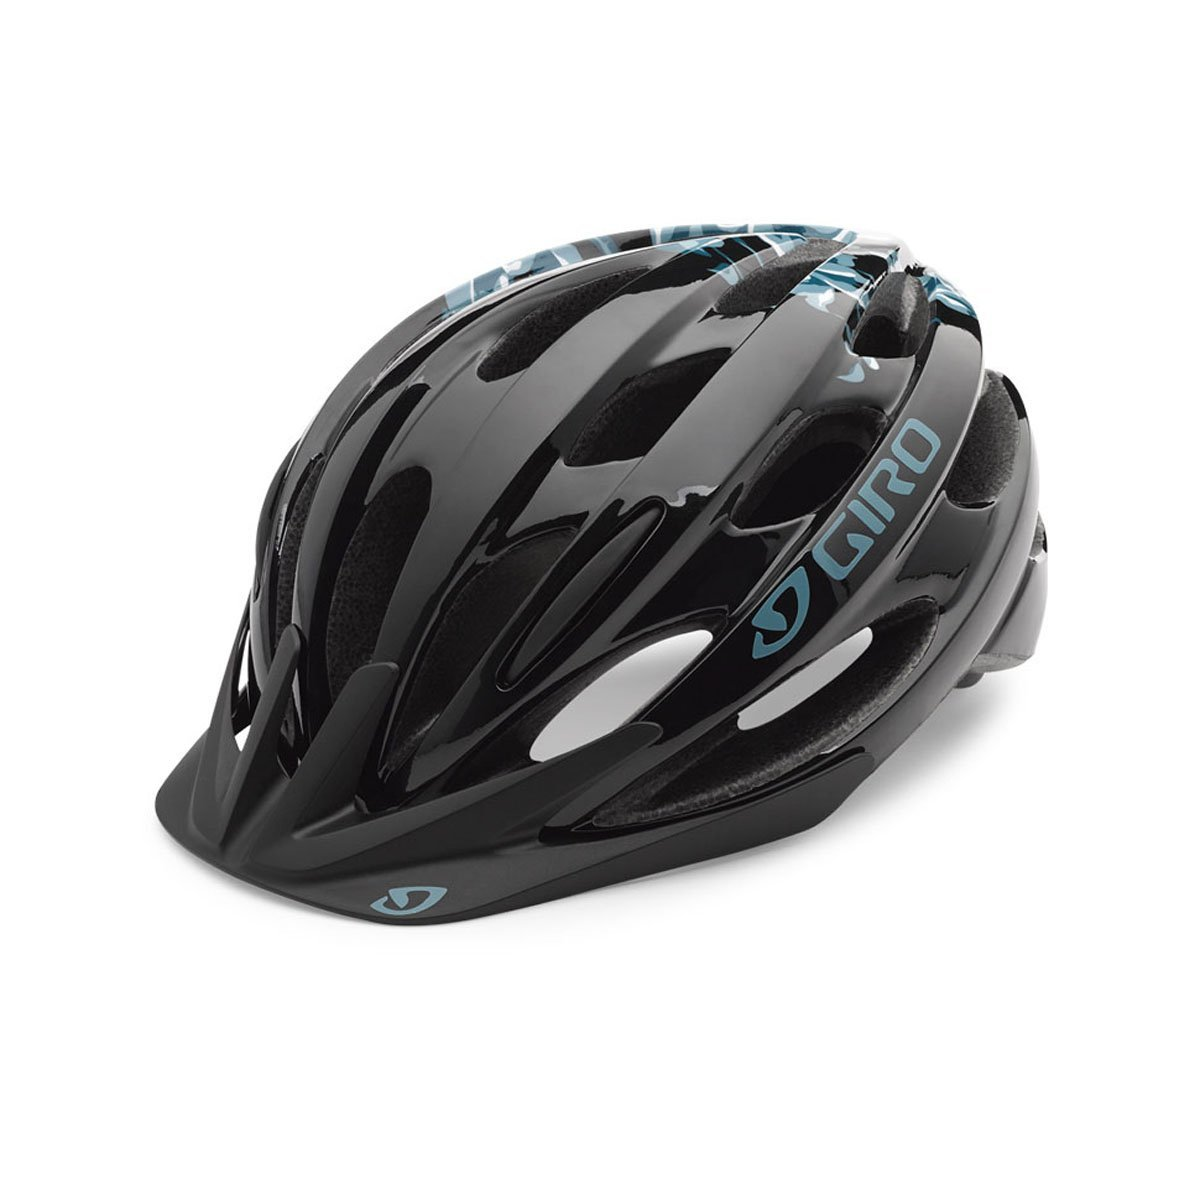 Best Selling Giro Bicycle Helmets